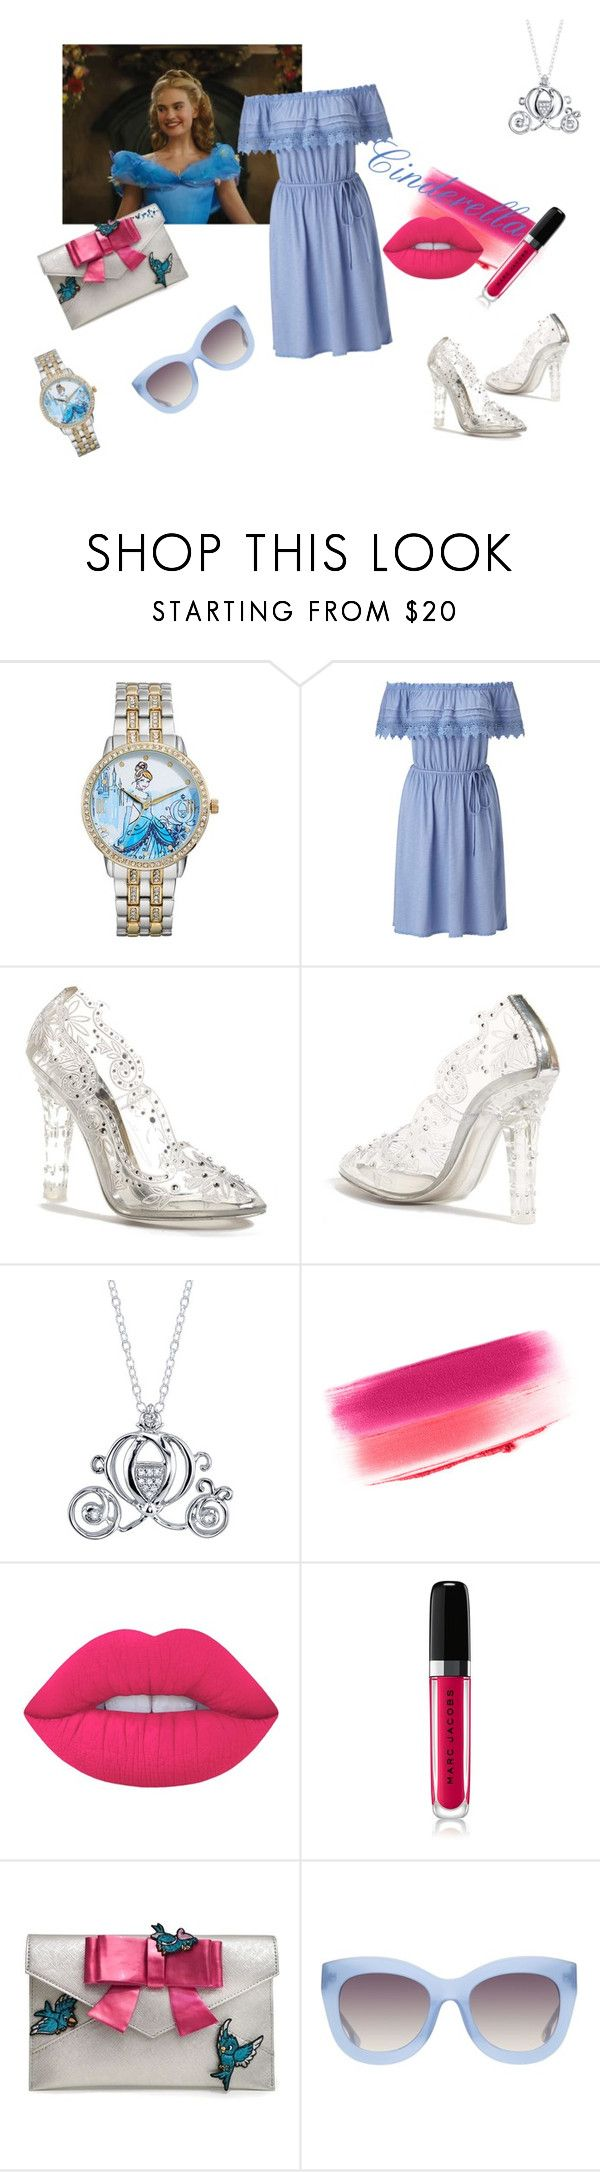 """""""Modern Cinderella"""" by elfafungian on Polyvore featuring Disney, Miss Selfridge, Dolce&Gabbana, Yves Saint Laurent, Lime Crime, Marc Jacobs, Danielle Nicole, Alice + Olivia and modern"""